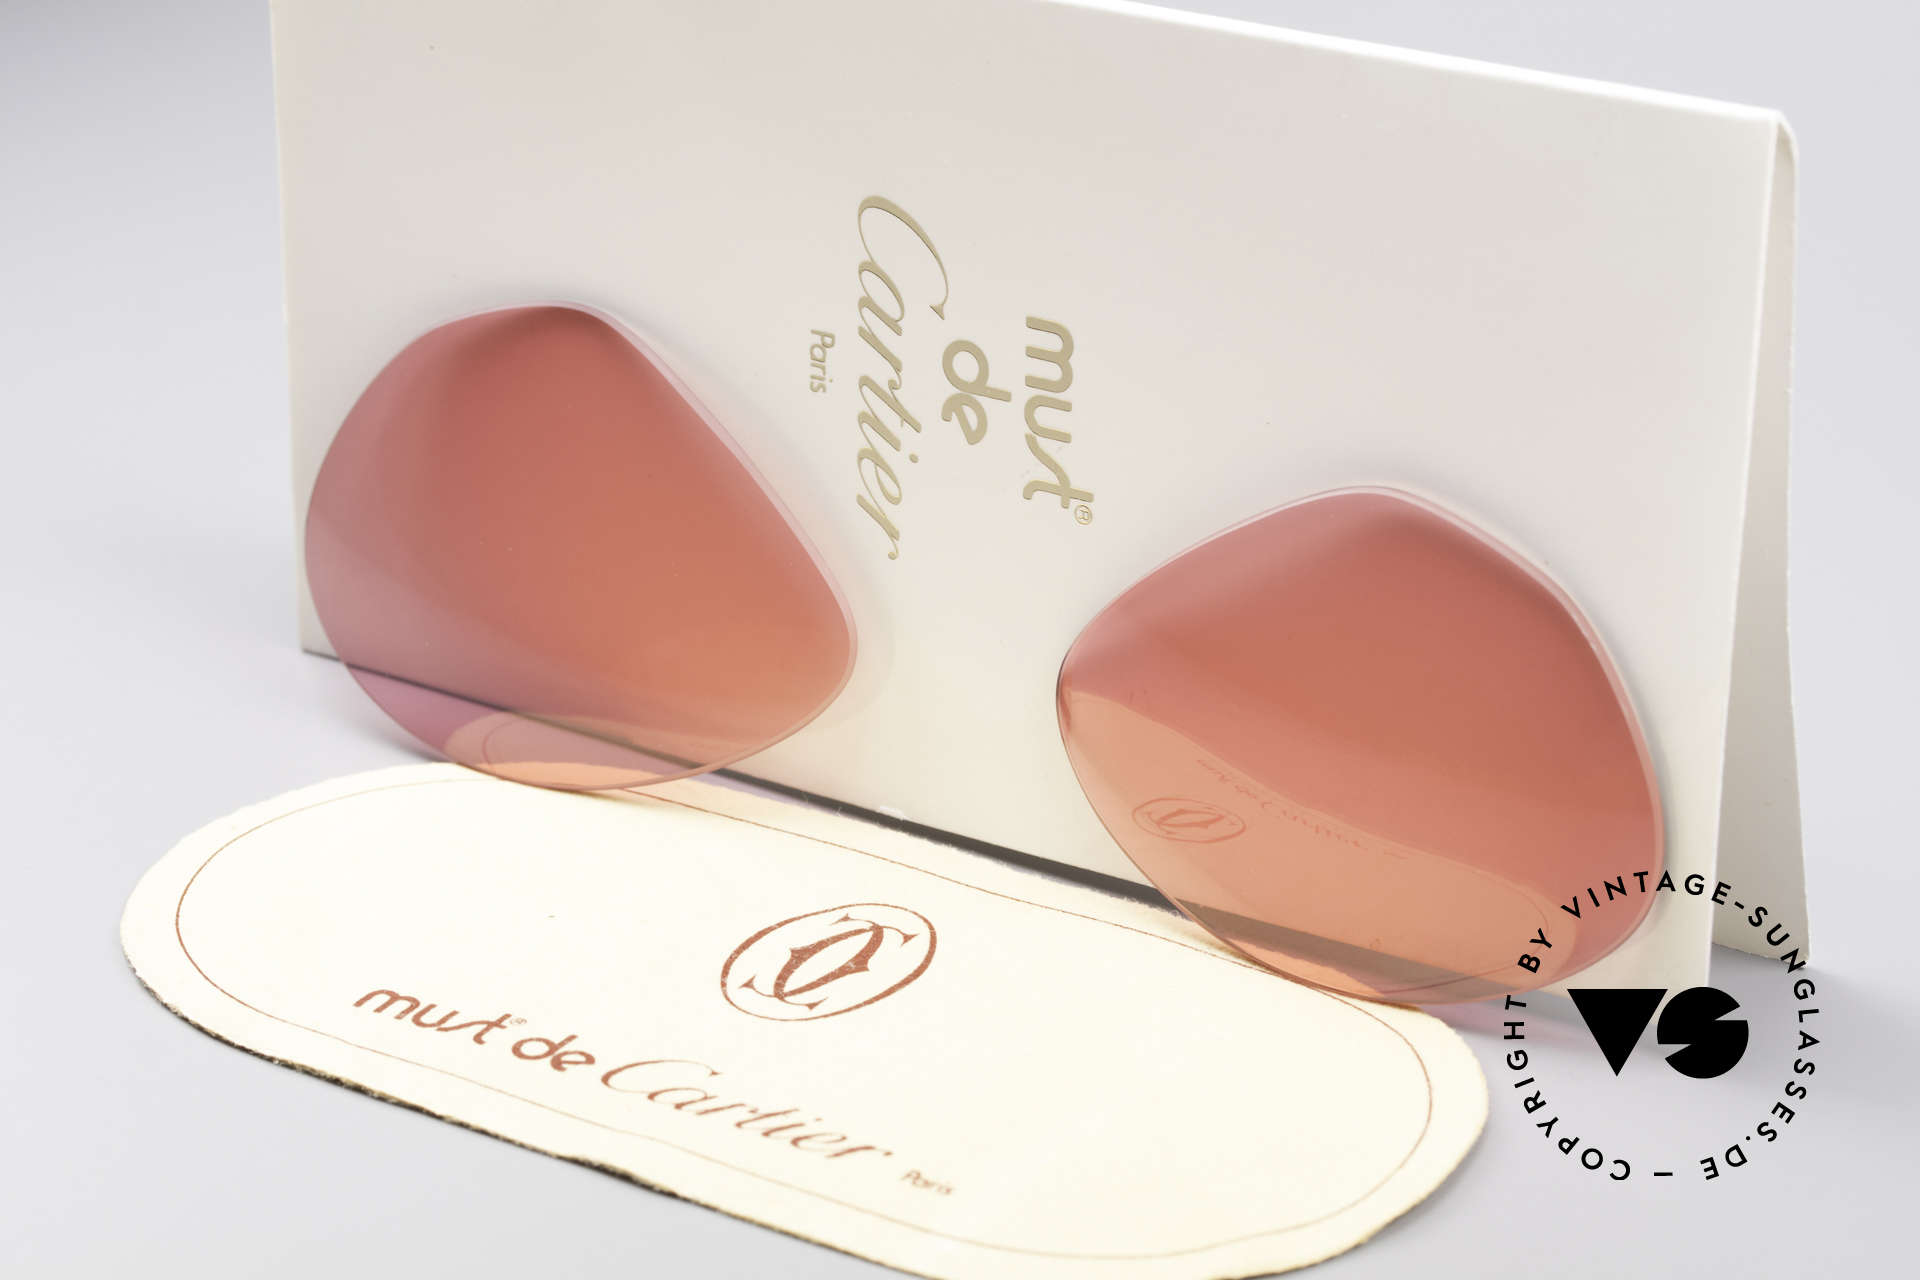 Cartier Vendome Lenses - M Pink Sun Lenses, new CR39 UV400 plastic lenses (for 100% UV protection), Made for Men and Women